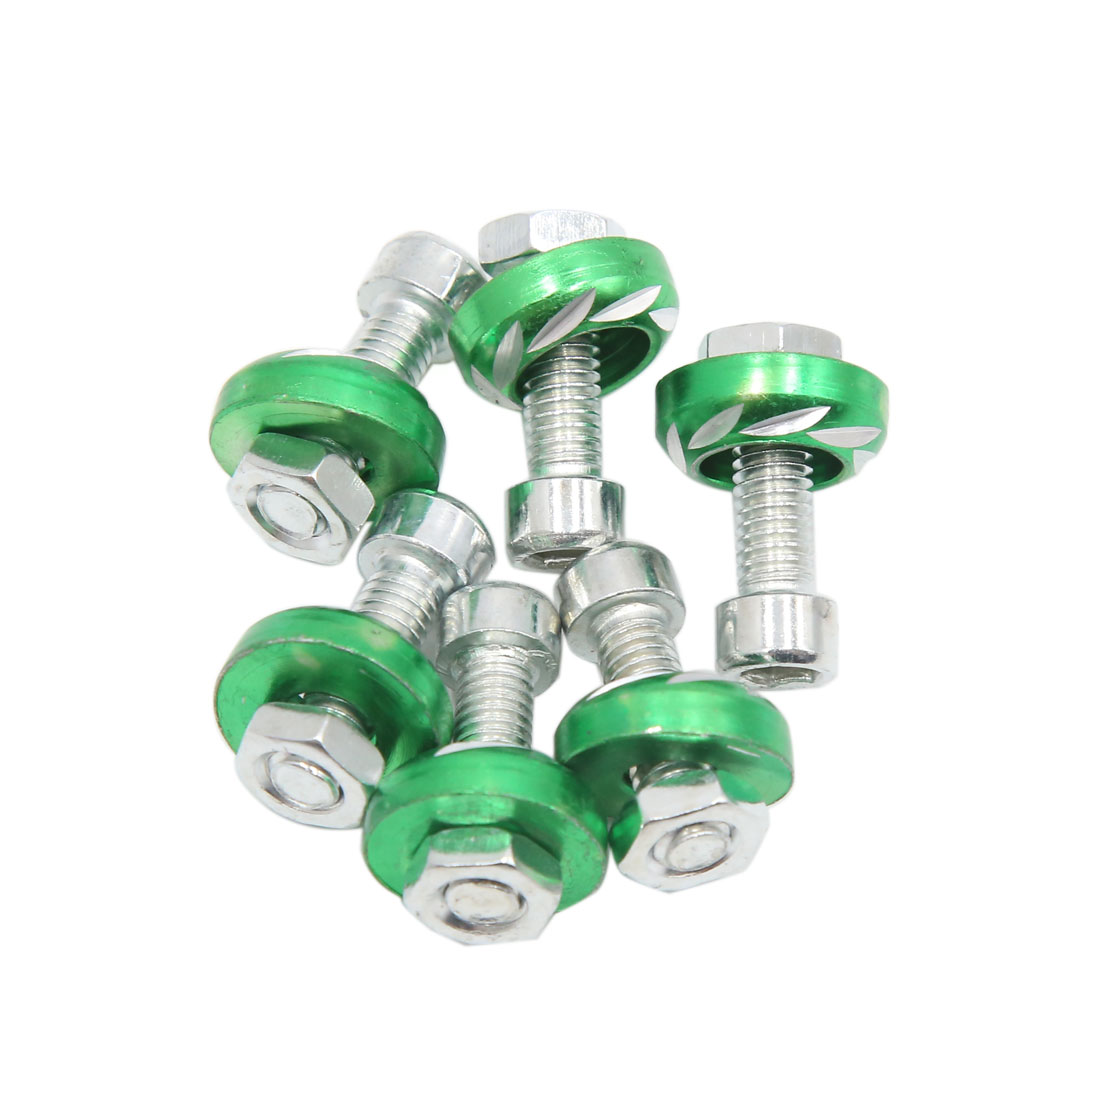 6pcs Green 6mm Thread Diameter Motorcycle License Plate Frame Carving Screws Bolts Caps